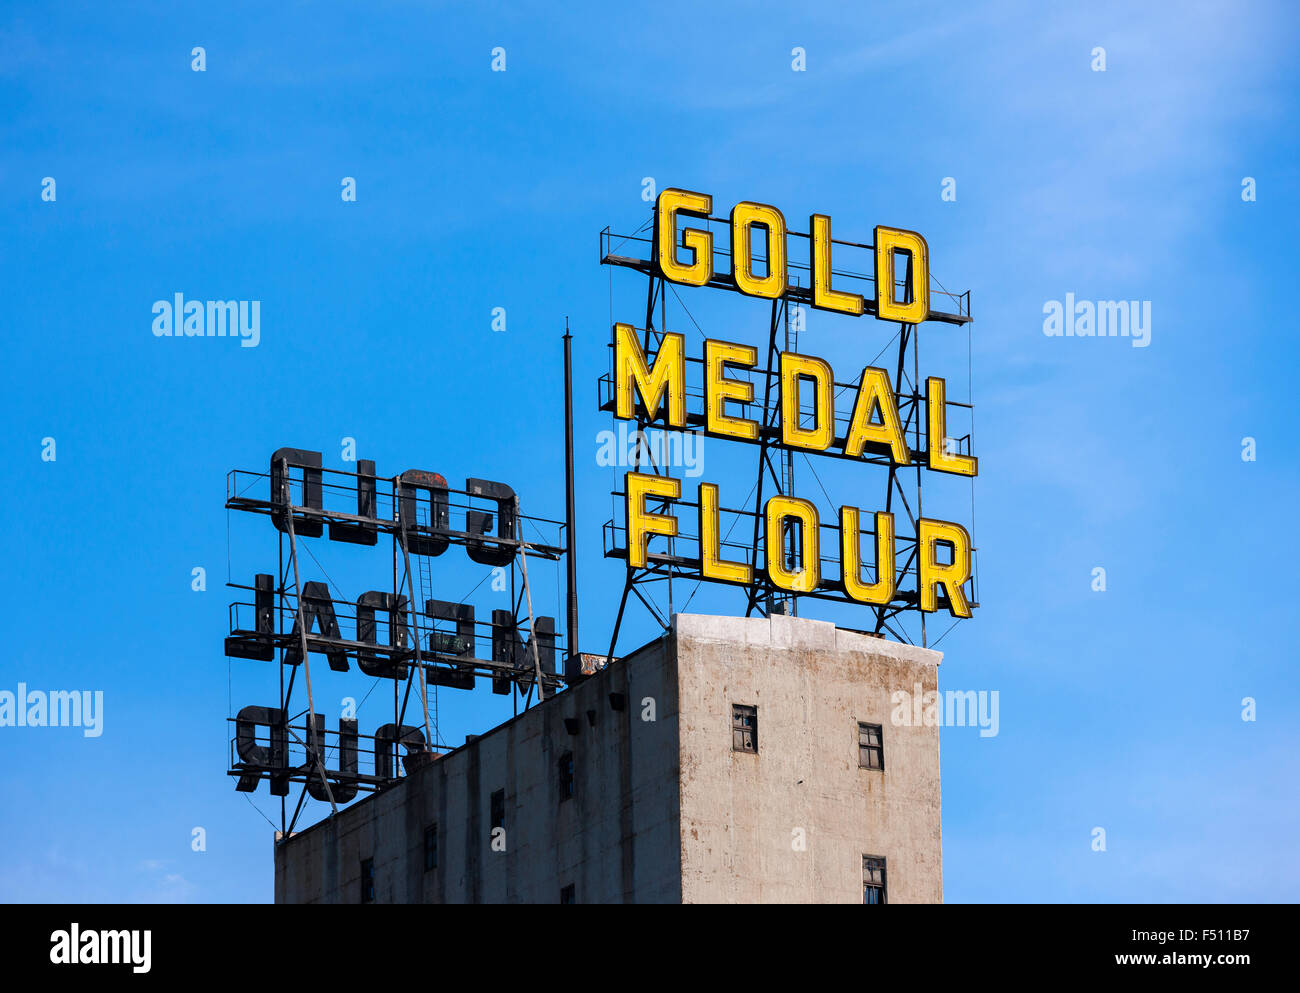 Minneapolis Minnesota skyline landmark: The Gold Medal Flour neon sign on top of the Mill City Museum building. - Stock Image